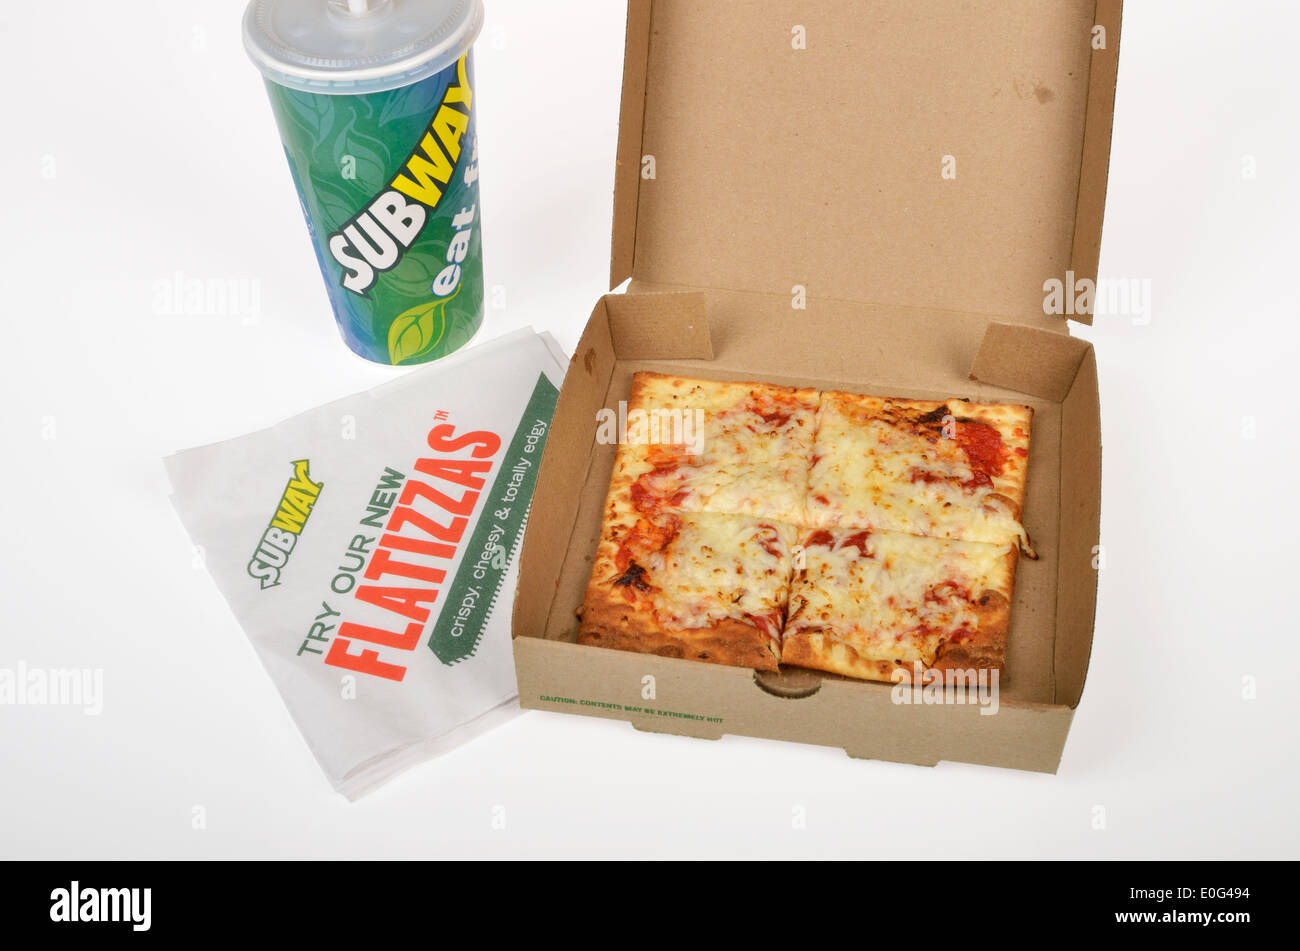 subway flatizza cheese pizza with soda and napkin in open takeaway